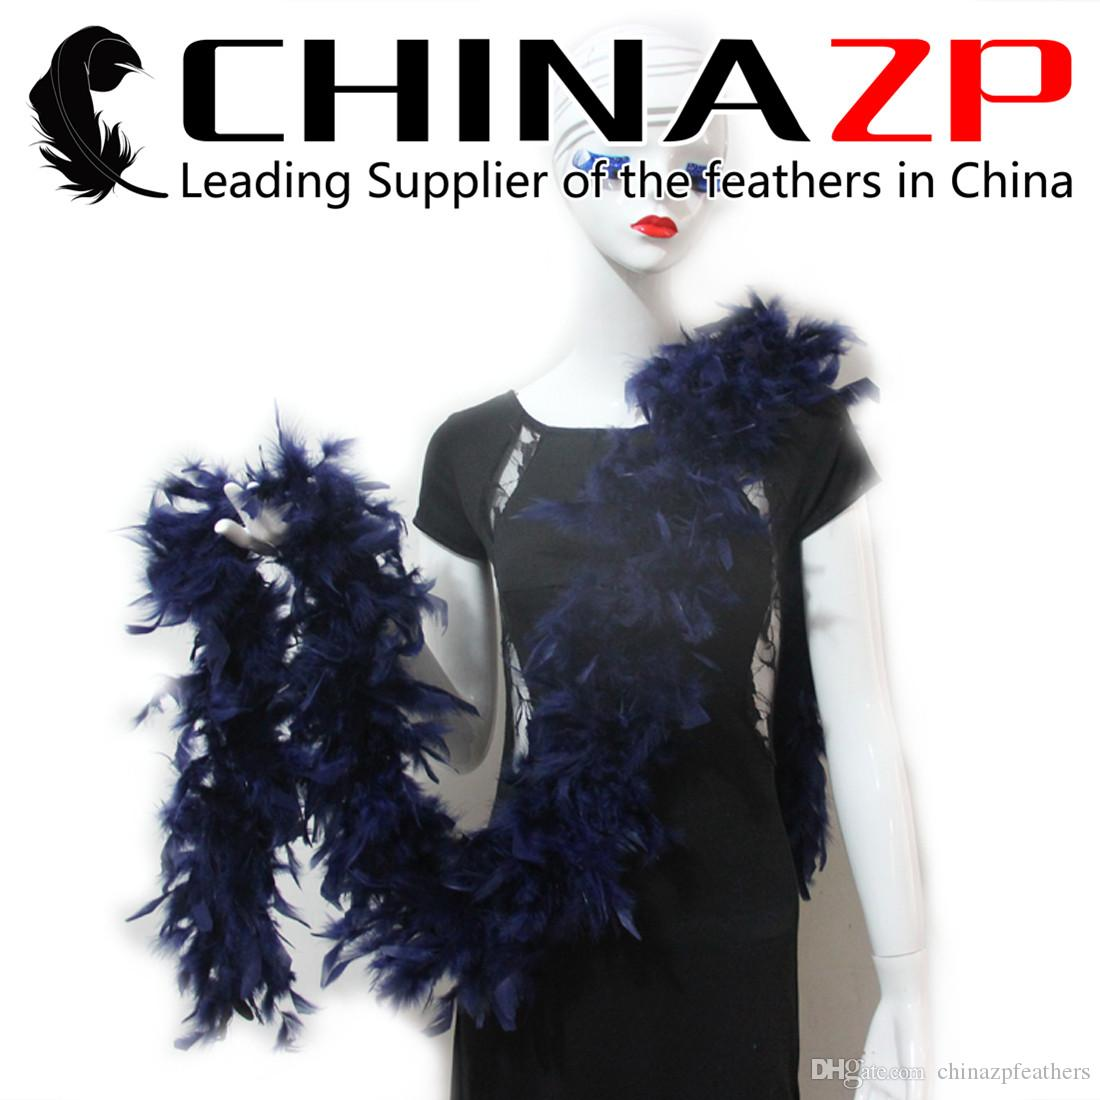 NO.1 Supplier CHINAZP Crafts 10yard/lot 80G Fluffy Dyed Dark Blue Turkey Chandelle Feather Boas and Scarfs